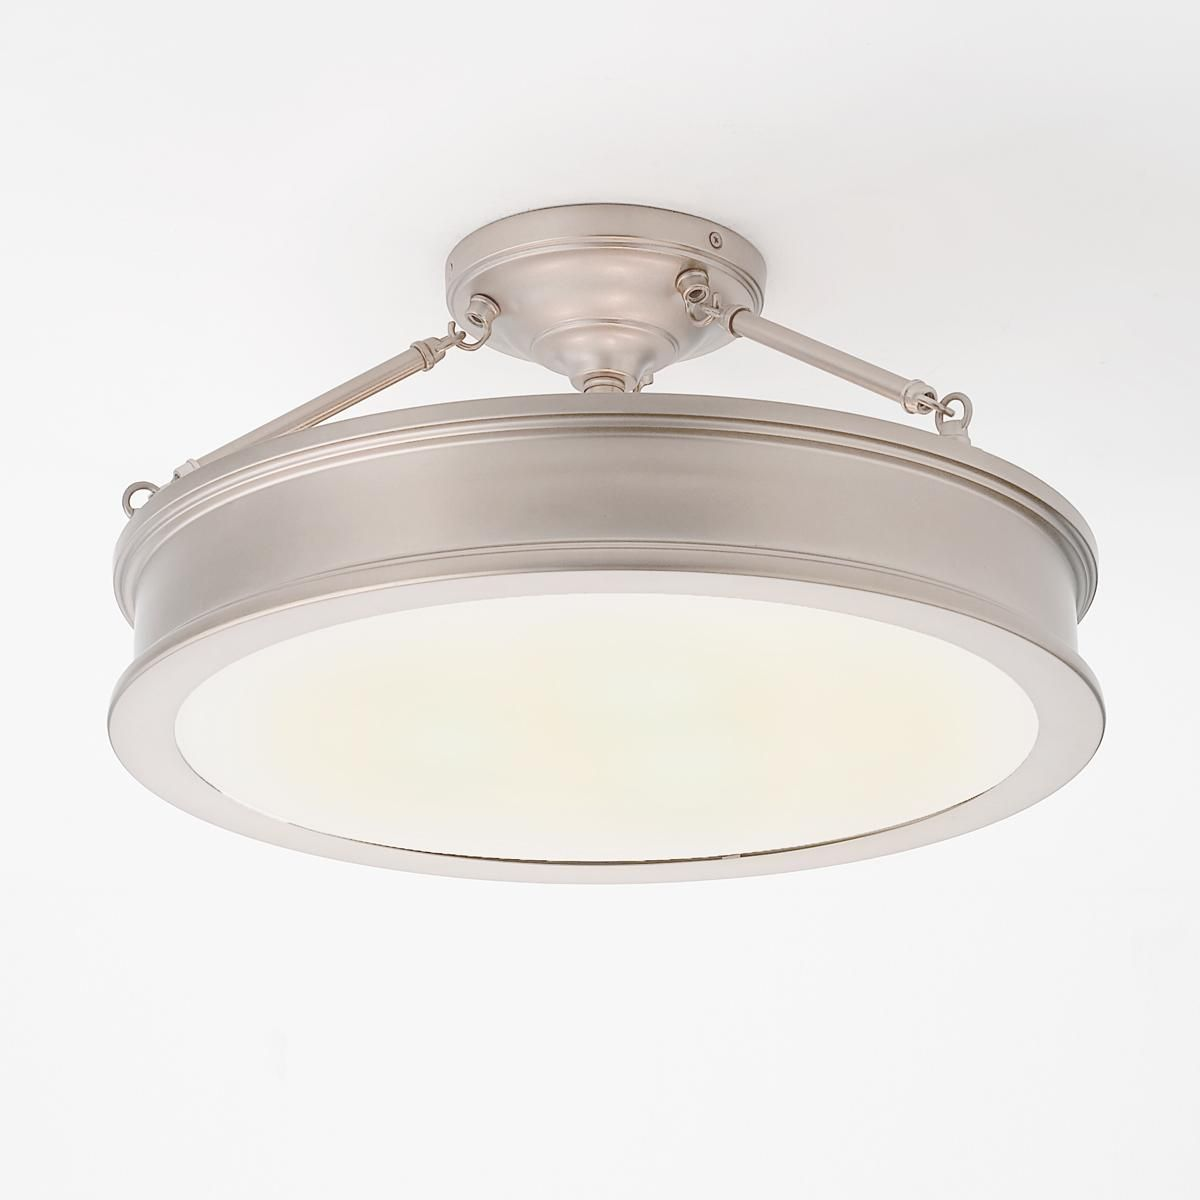 Traditional Urban Semi Flush Ceiling Light